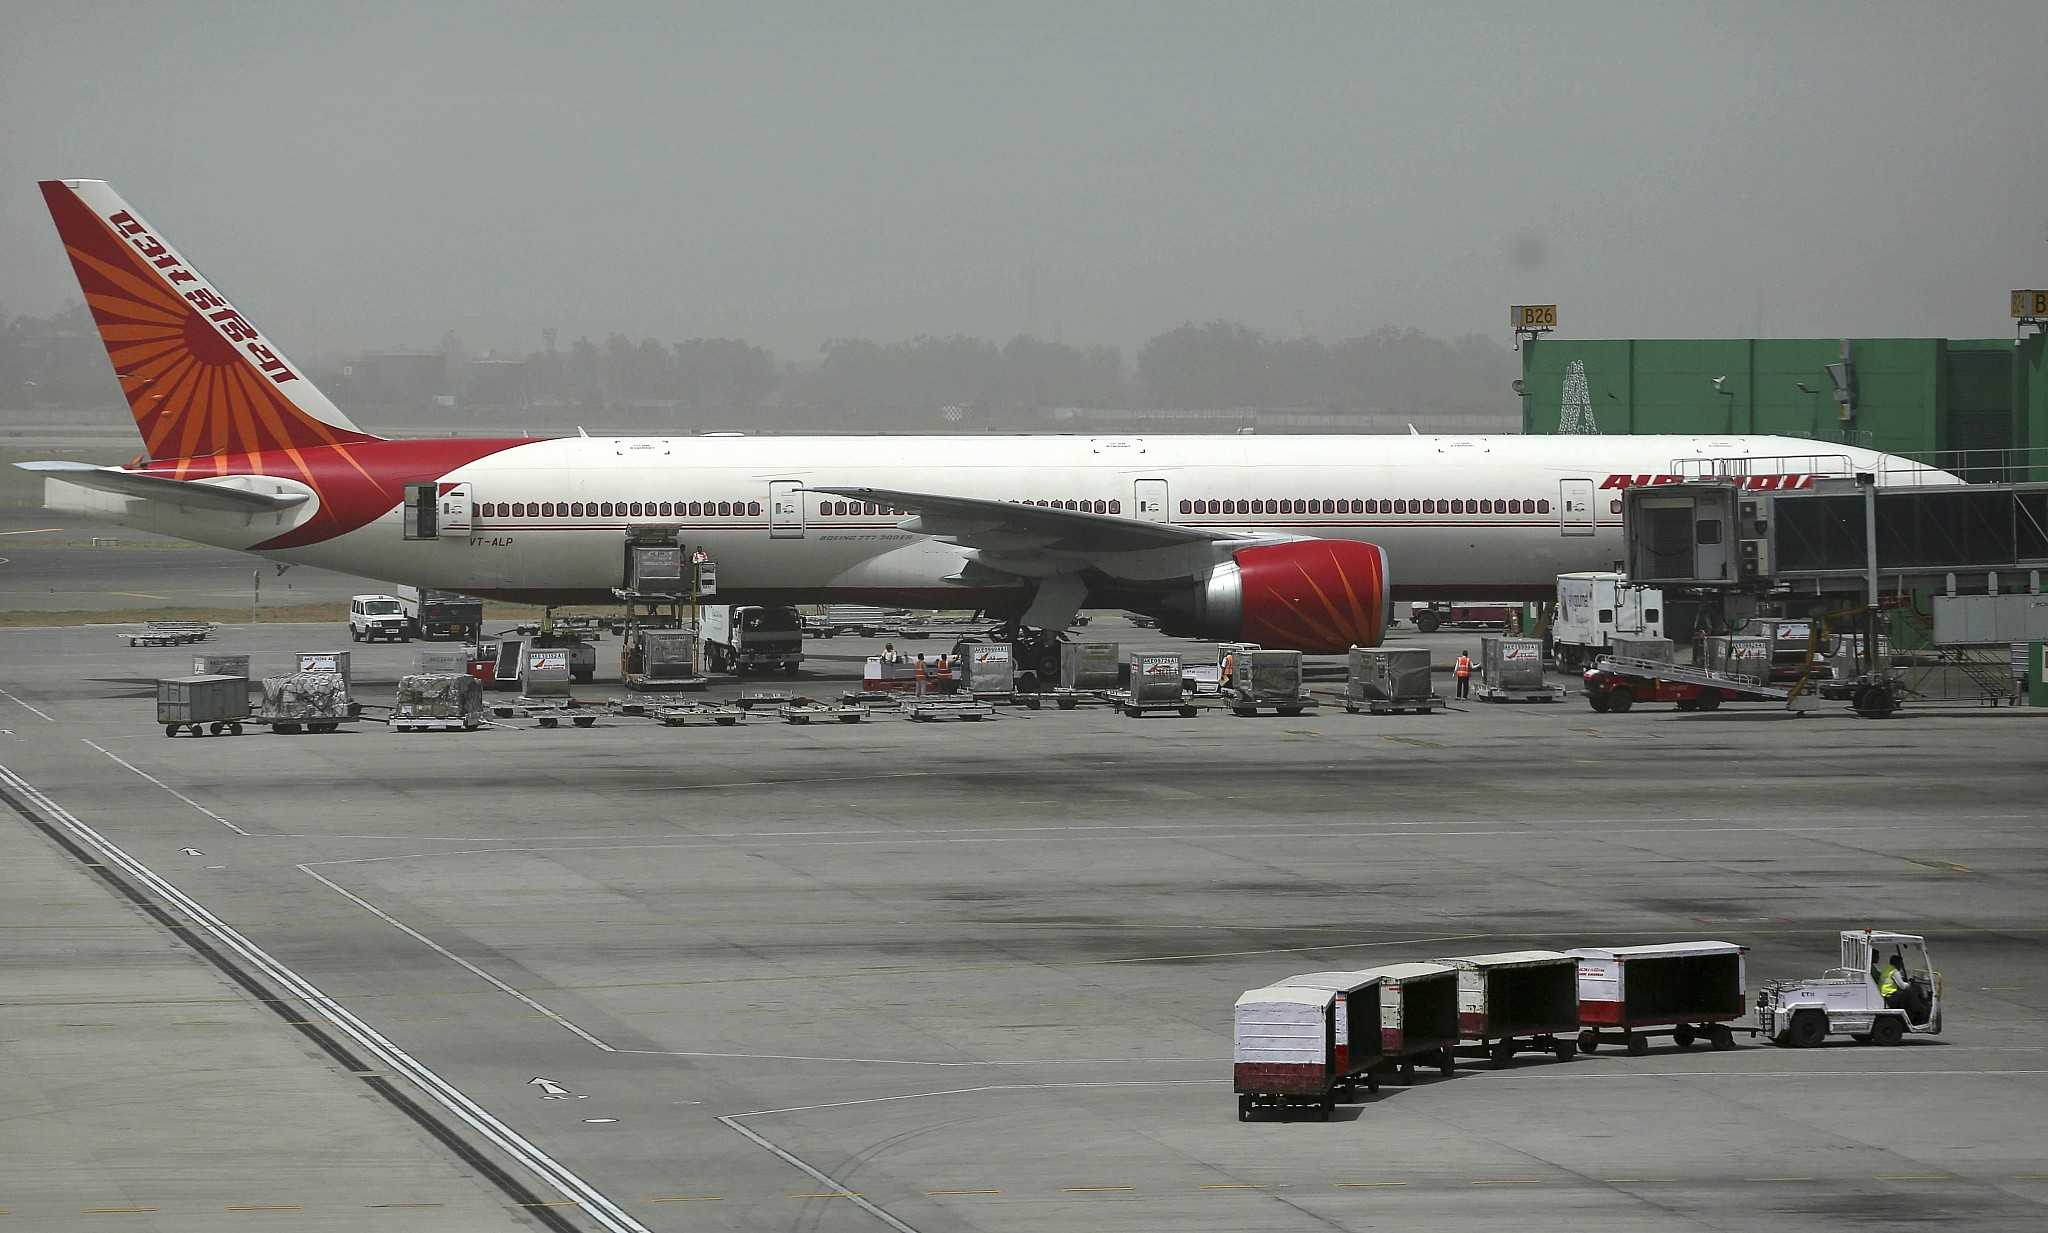 Air India granted Saudi transit rights for Israel route